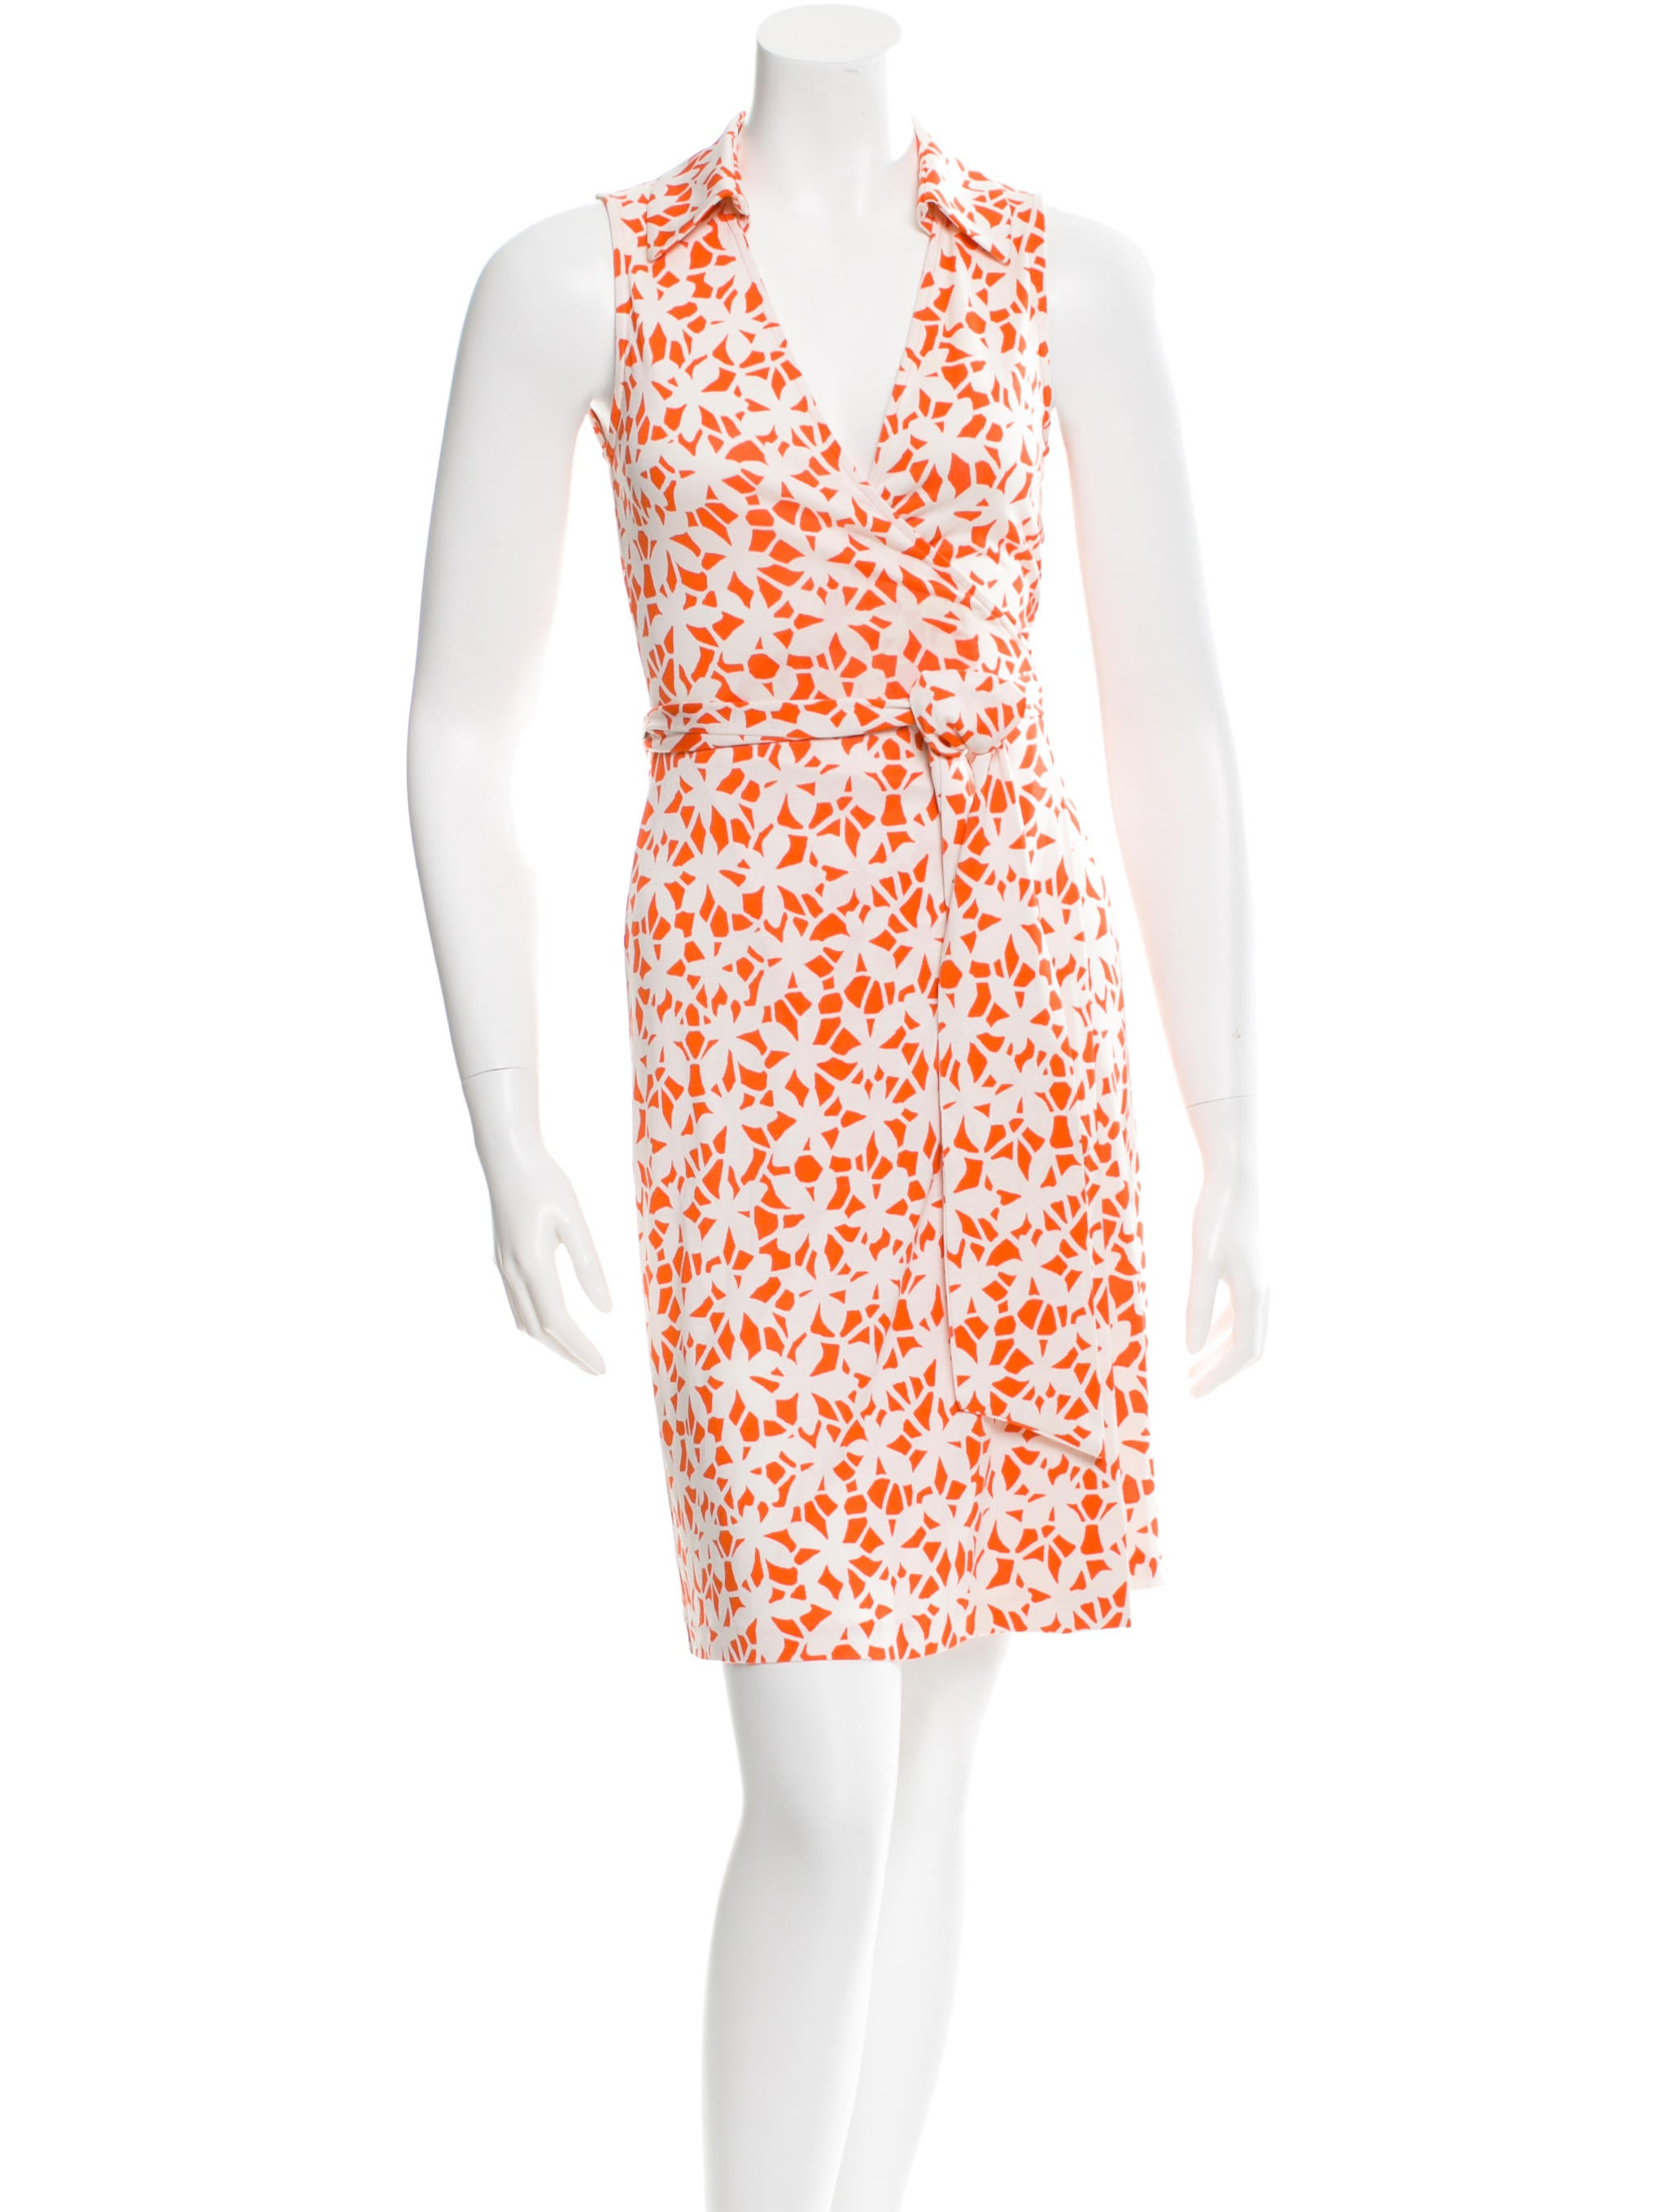 Diane von furstenberg silk wrap dress clothing for Diane von furstenberg clothes